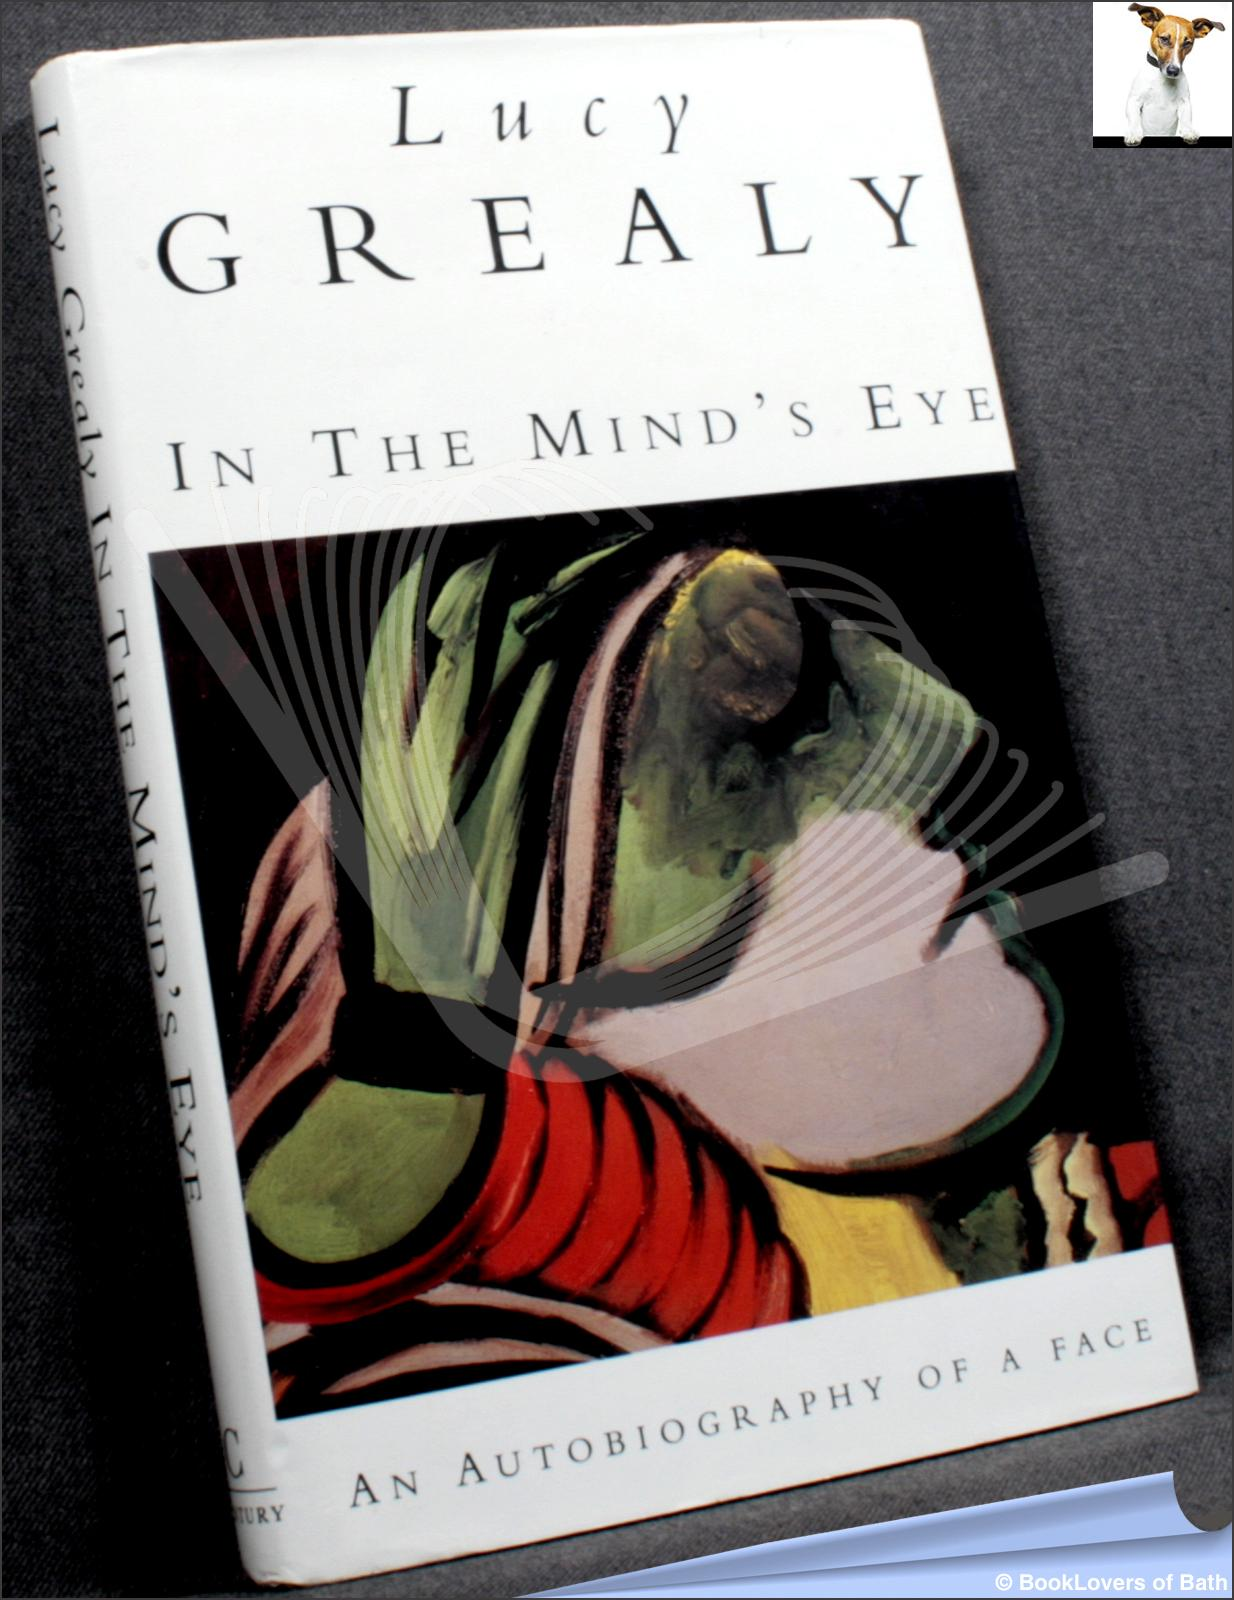 In the Mind's Eye - Lucy Grealy